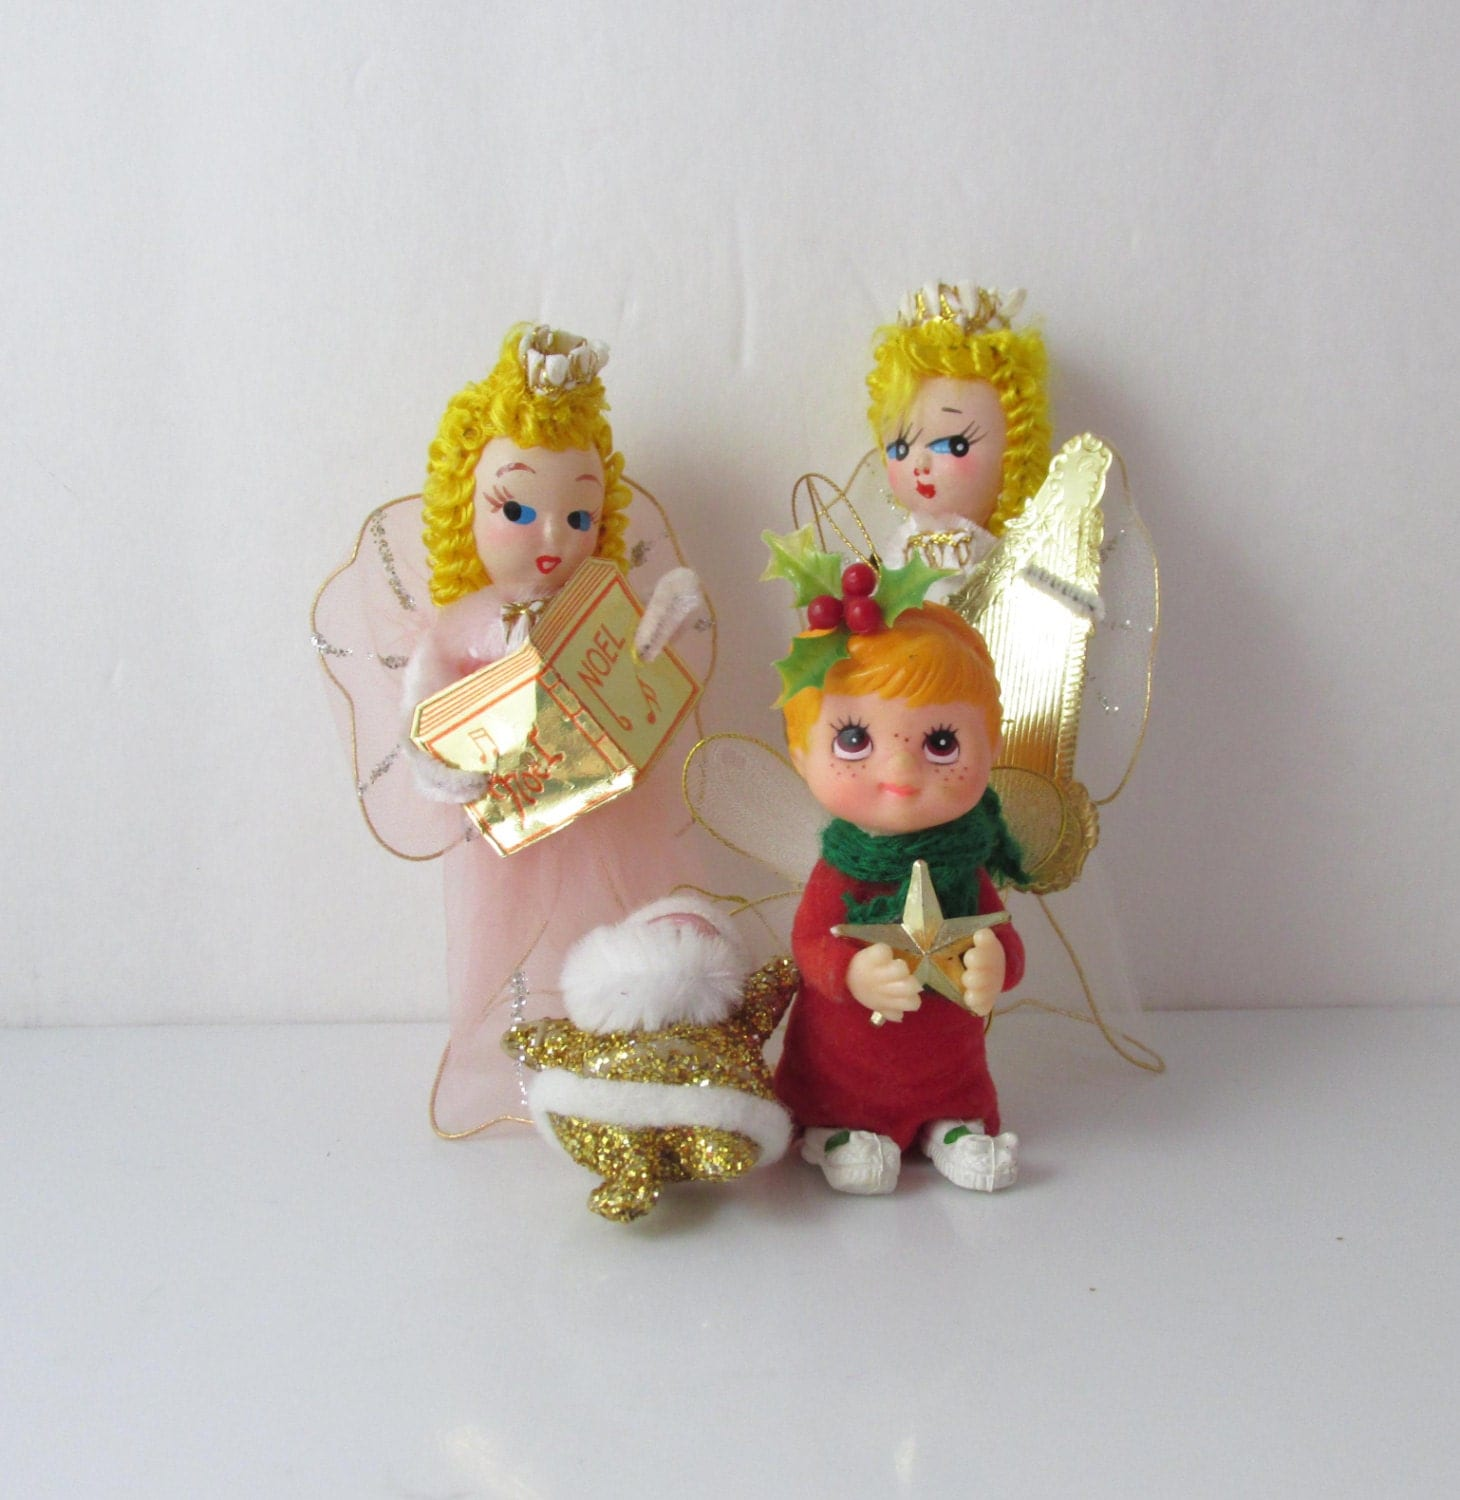 Lot Of 5 Vintage Christmas Decorations Kitsch Santa Claus: Retro Kitsch Angel Santa Christmas Ornaments Figures Lot Of 4